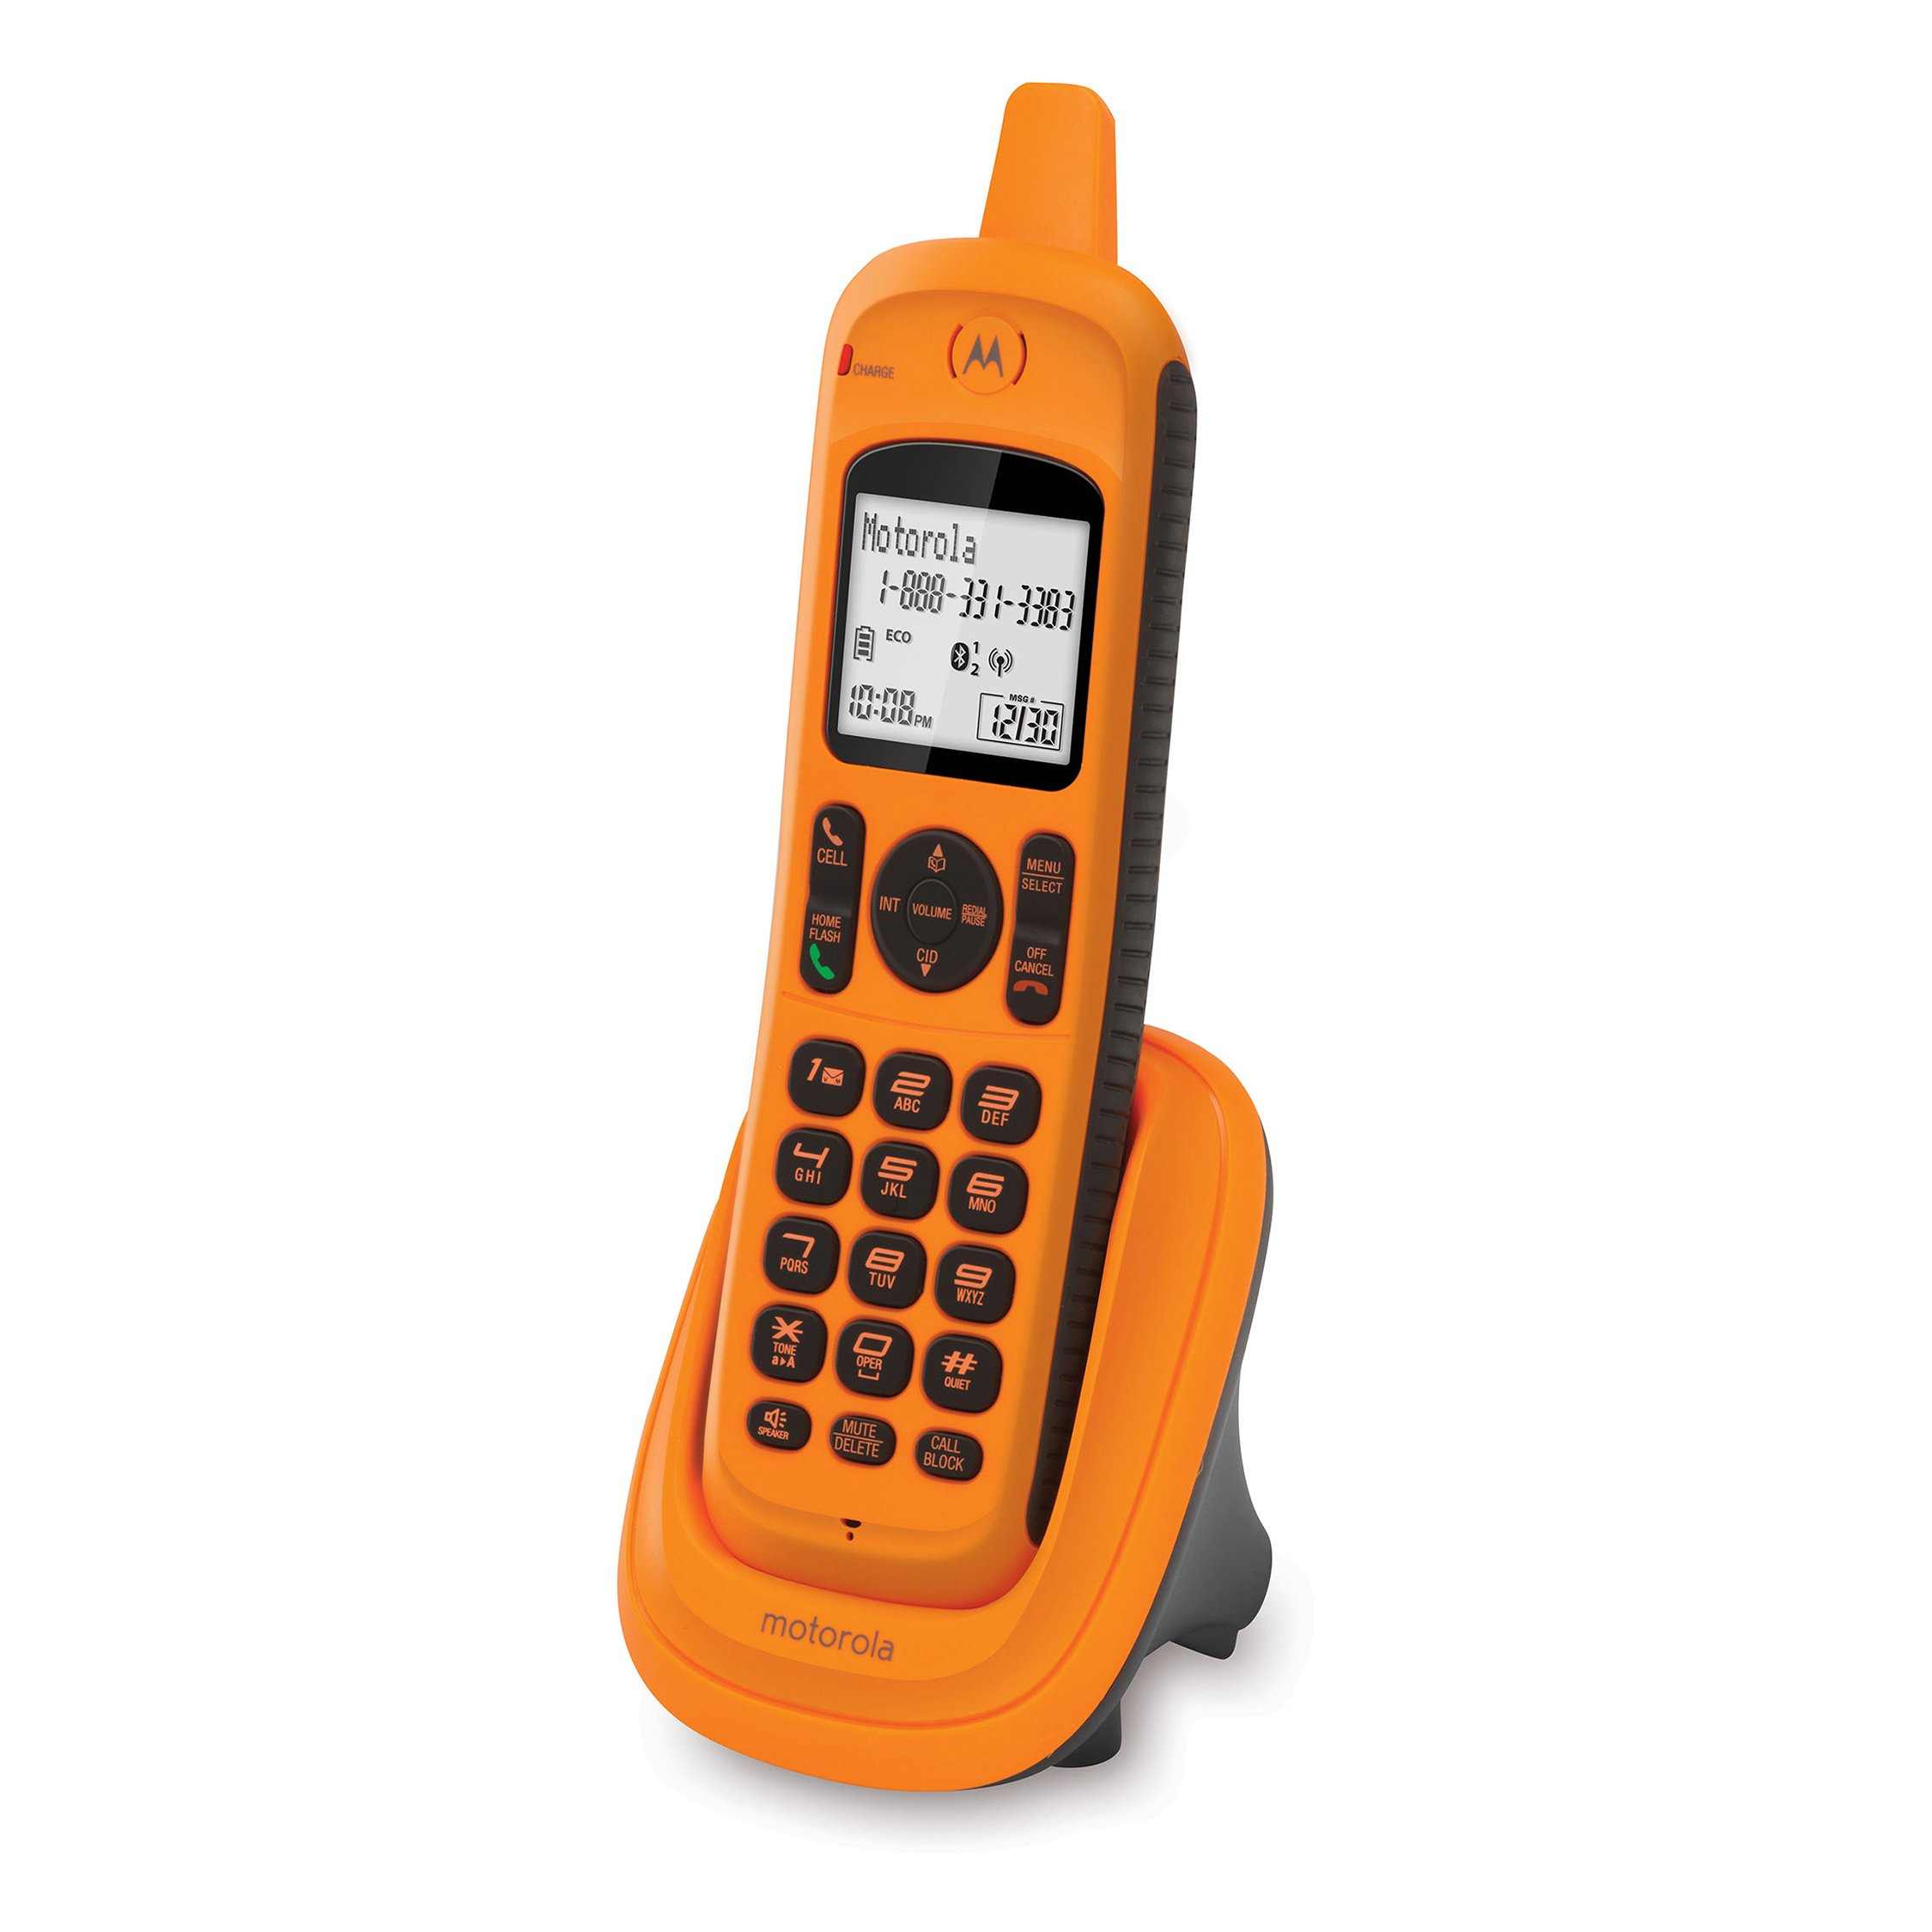 Motorola XT8 Connect-to-Cell Rugged Waterproof Accessory-Handset Cordless Phone with Caller ID, Call Block, Answering Machine, Redial, DECT 6.0, Full Duplex Handset Speakerphone, Amber